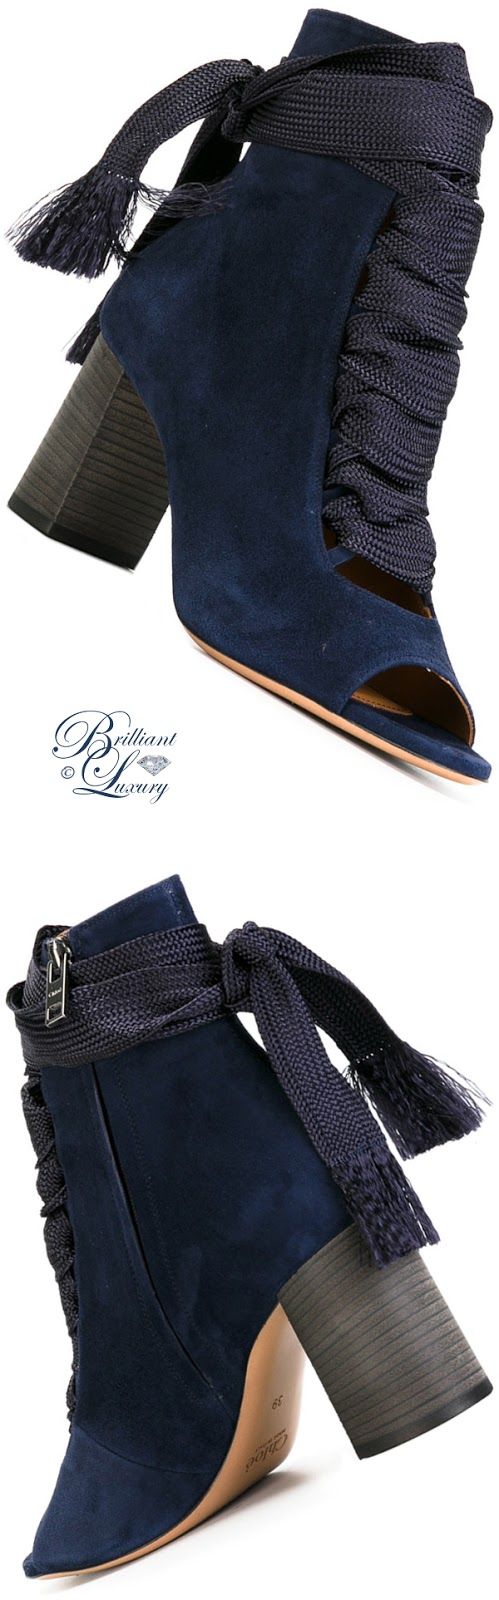 Brilliant Luxury ♦ Chloé Harper Velours Booties #blue